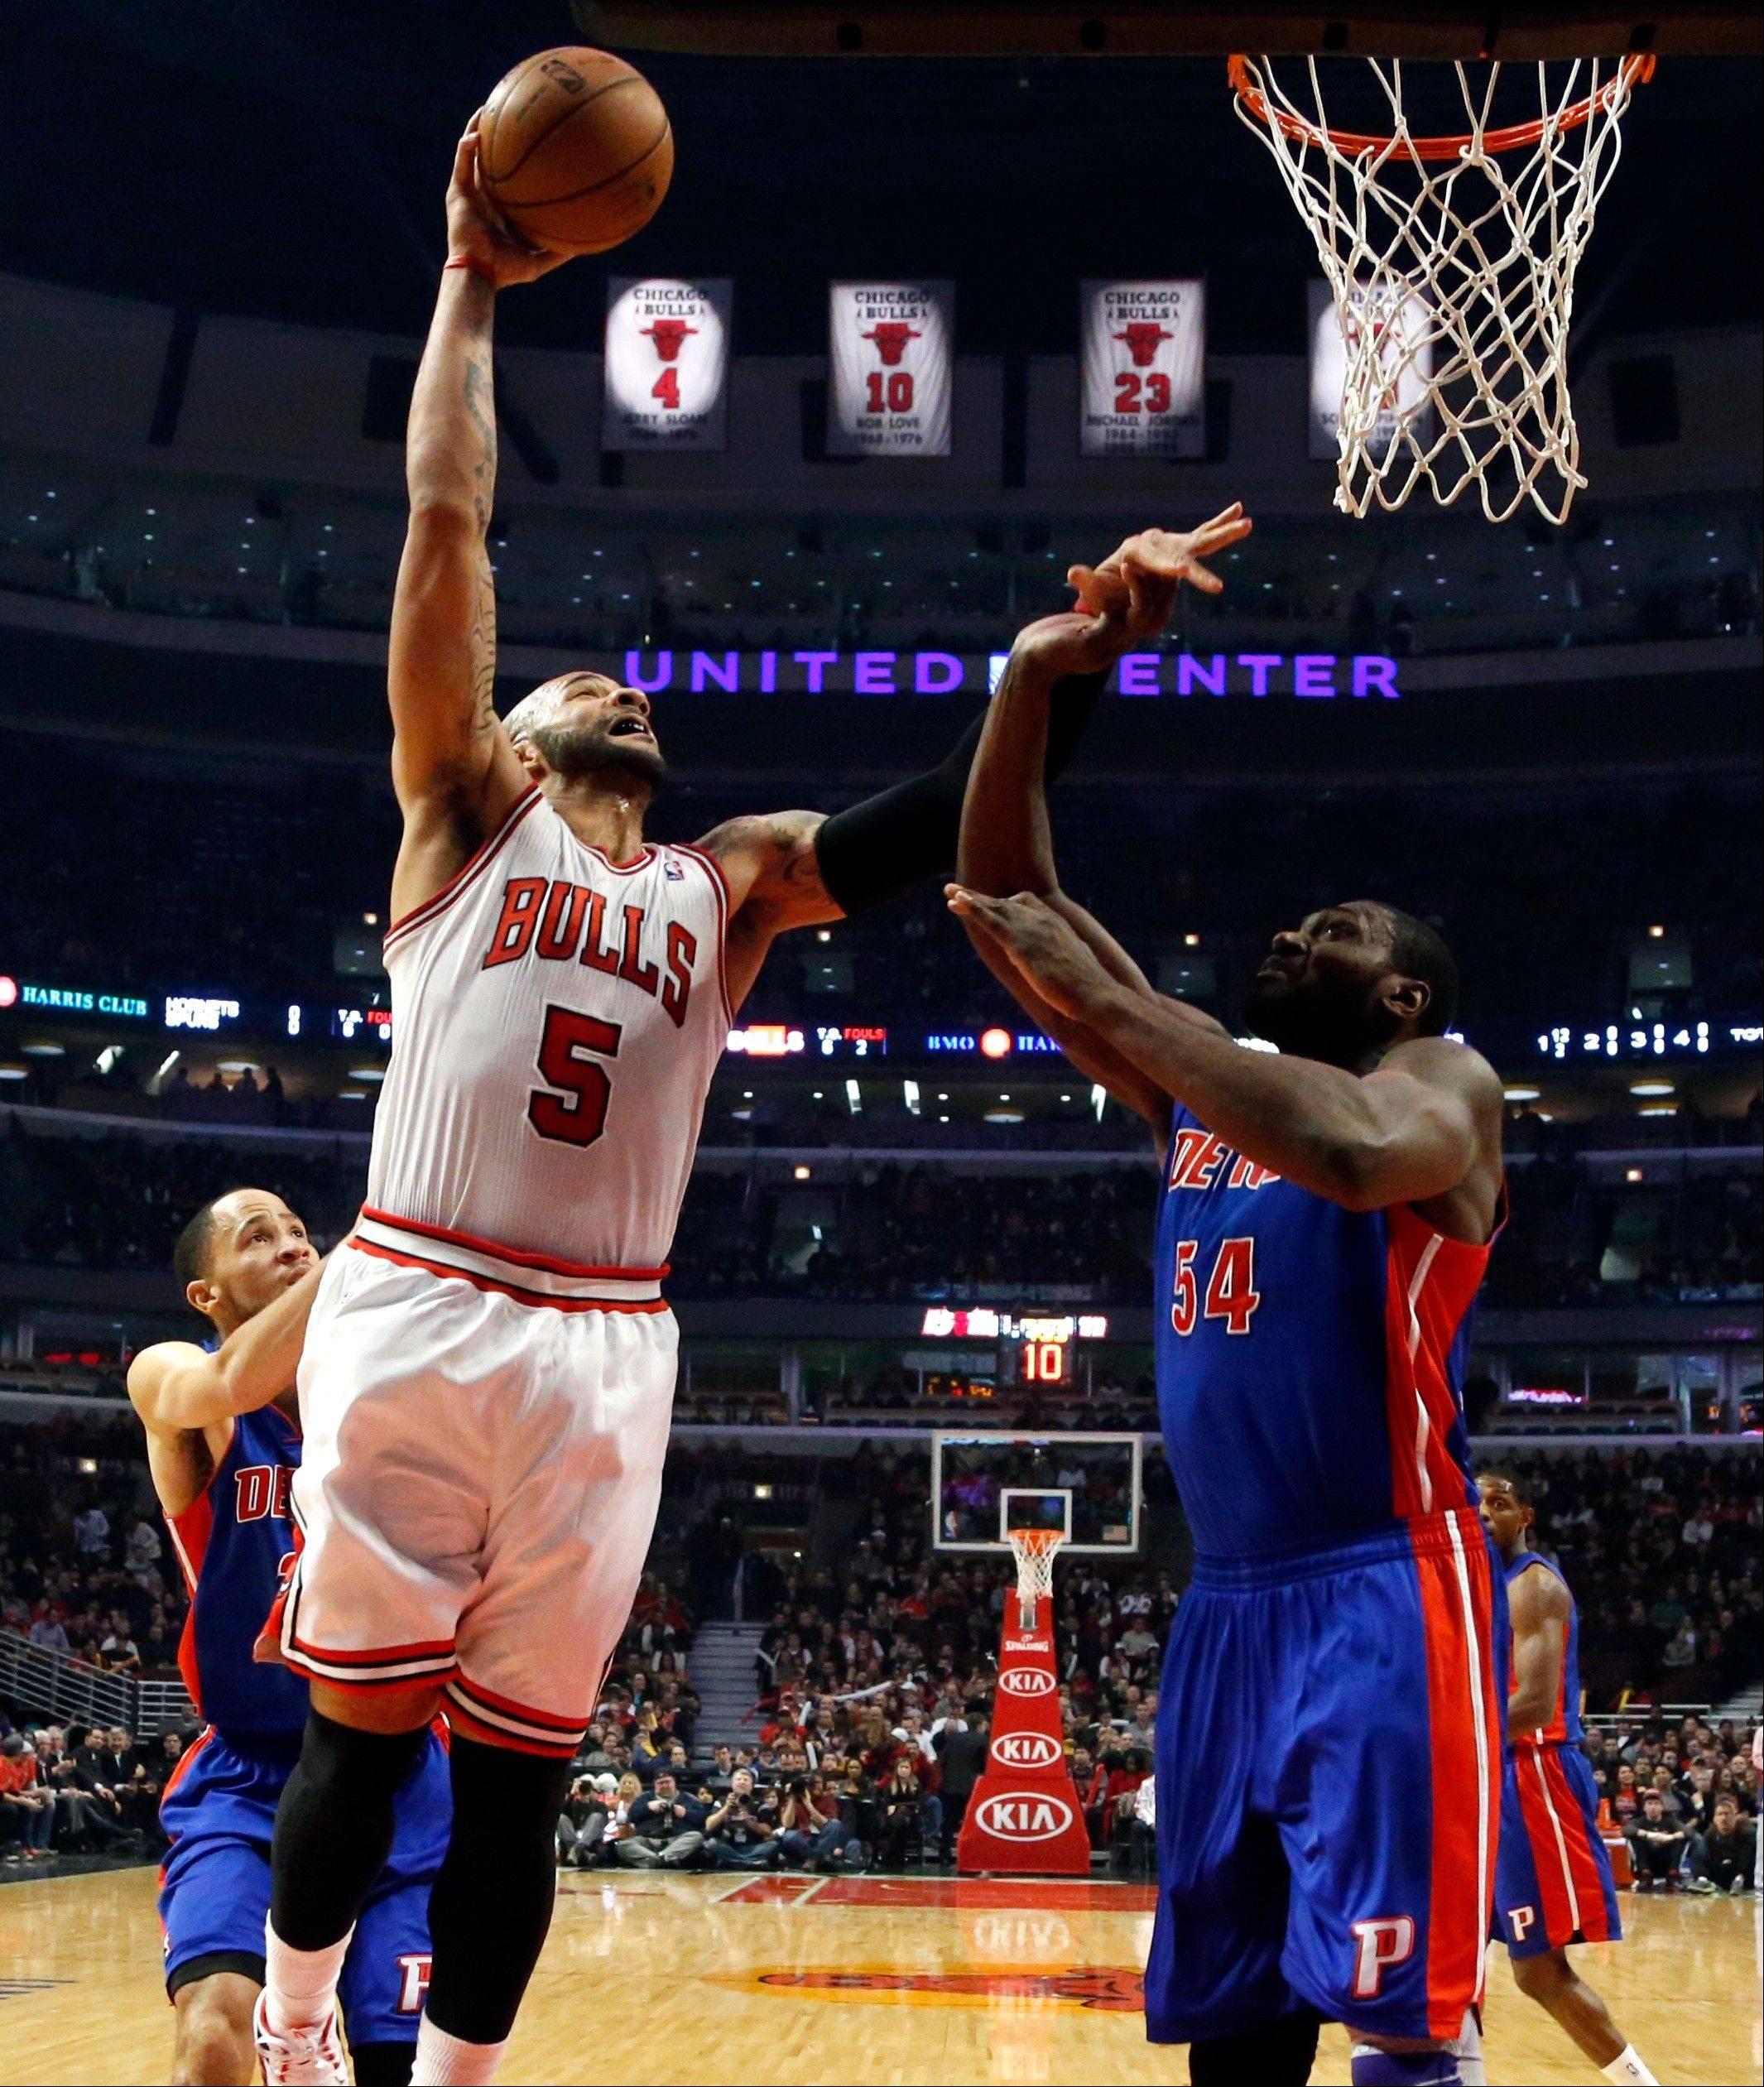 Chicago Bulls forward Carlos Boozer (5) shoots over Detroit Pistons forward Jason Maxiell (54) during the first half of an NBA basketball game, Wednesday, Jan. 23, 2013, in Chicago. Boozer could be namedwhen the NBA's all-star reserves are announced Thursday on TNT, starting a 6 p.m.